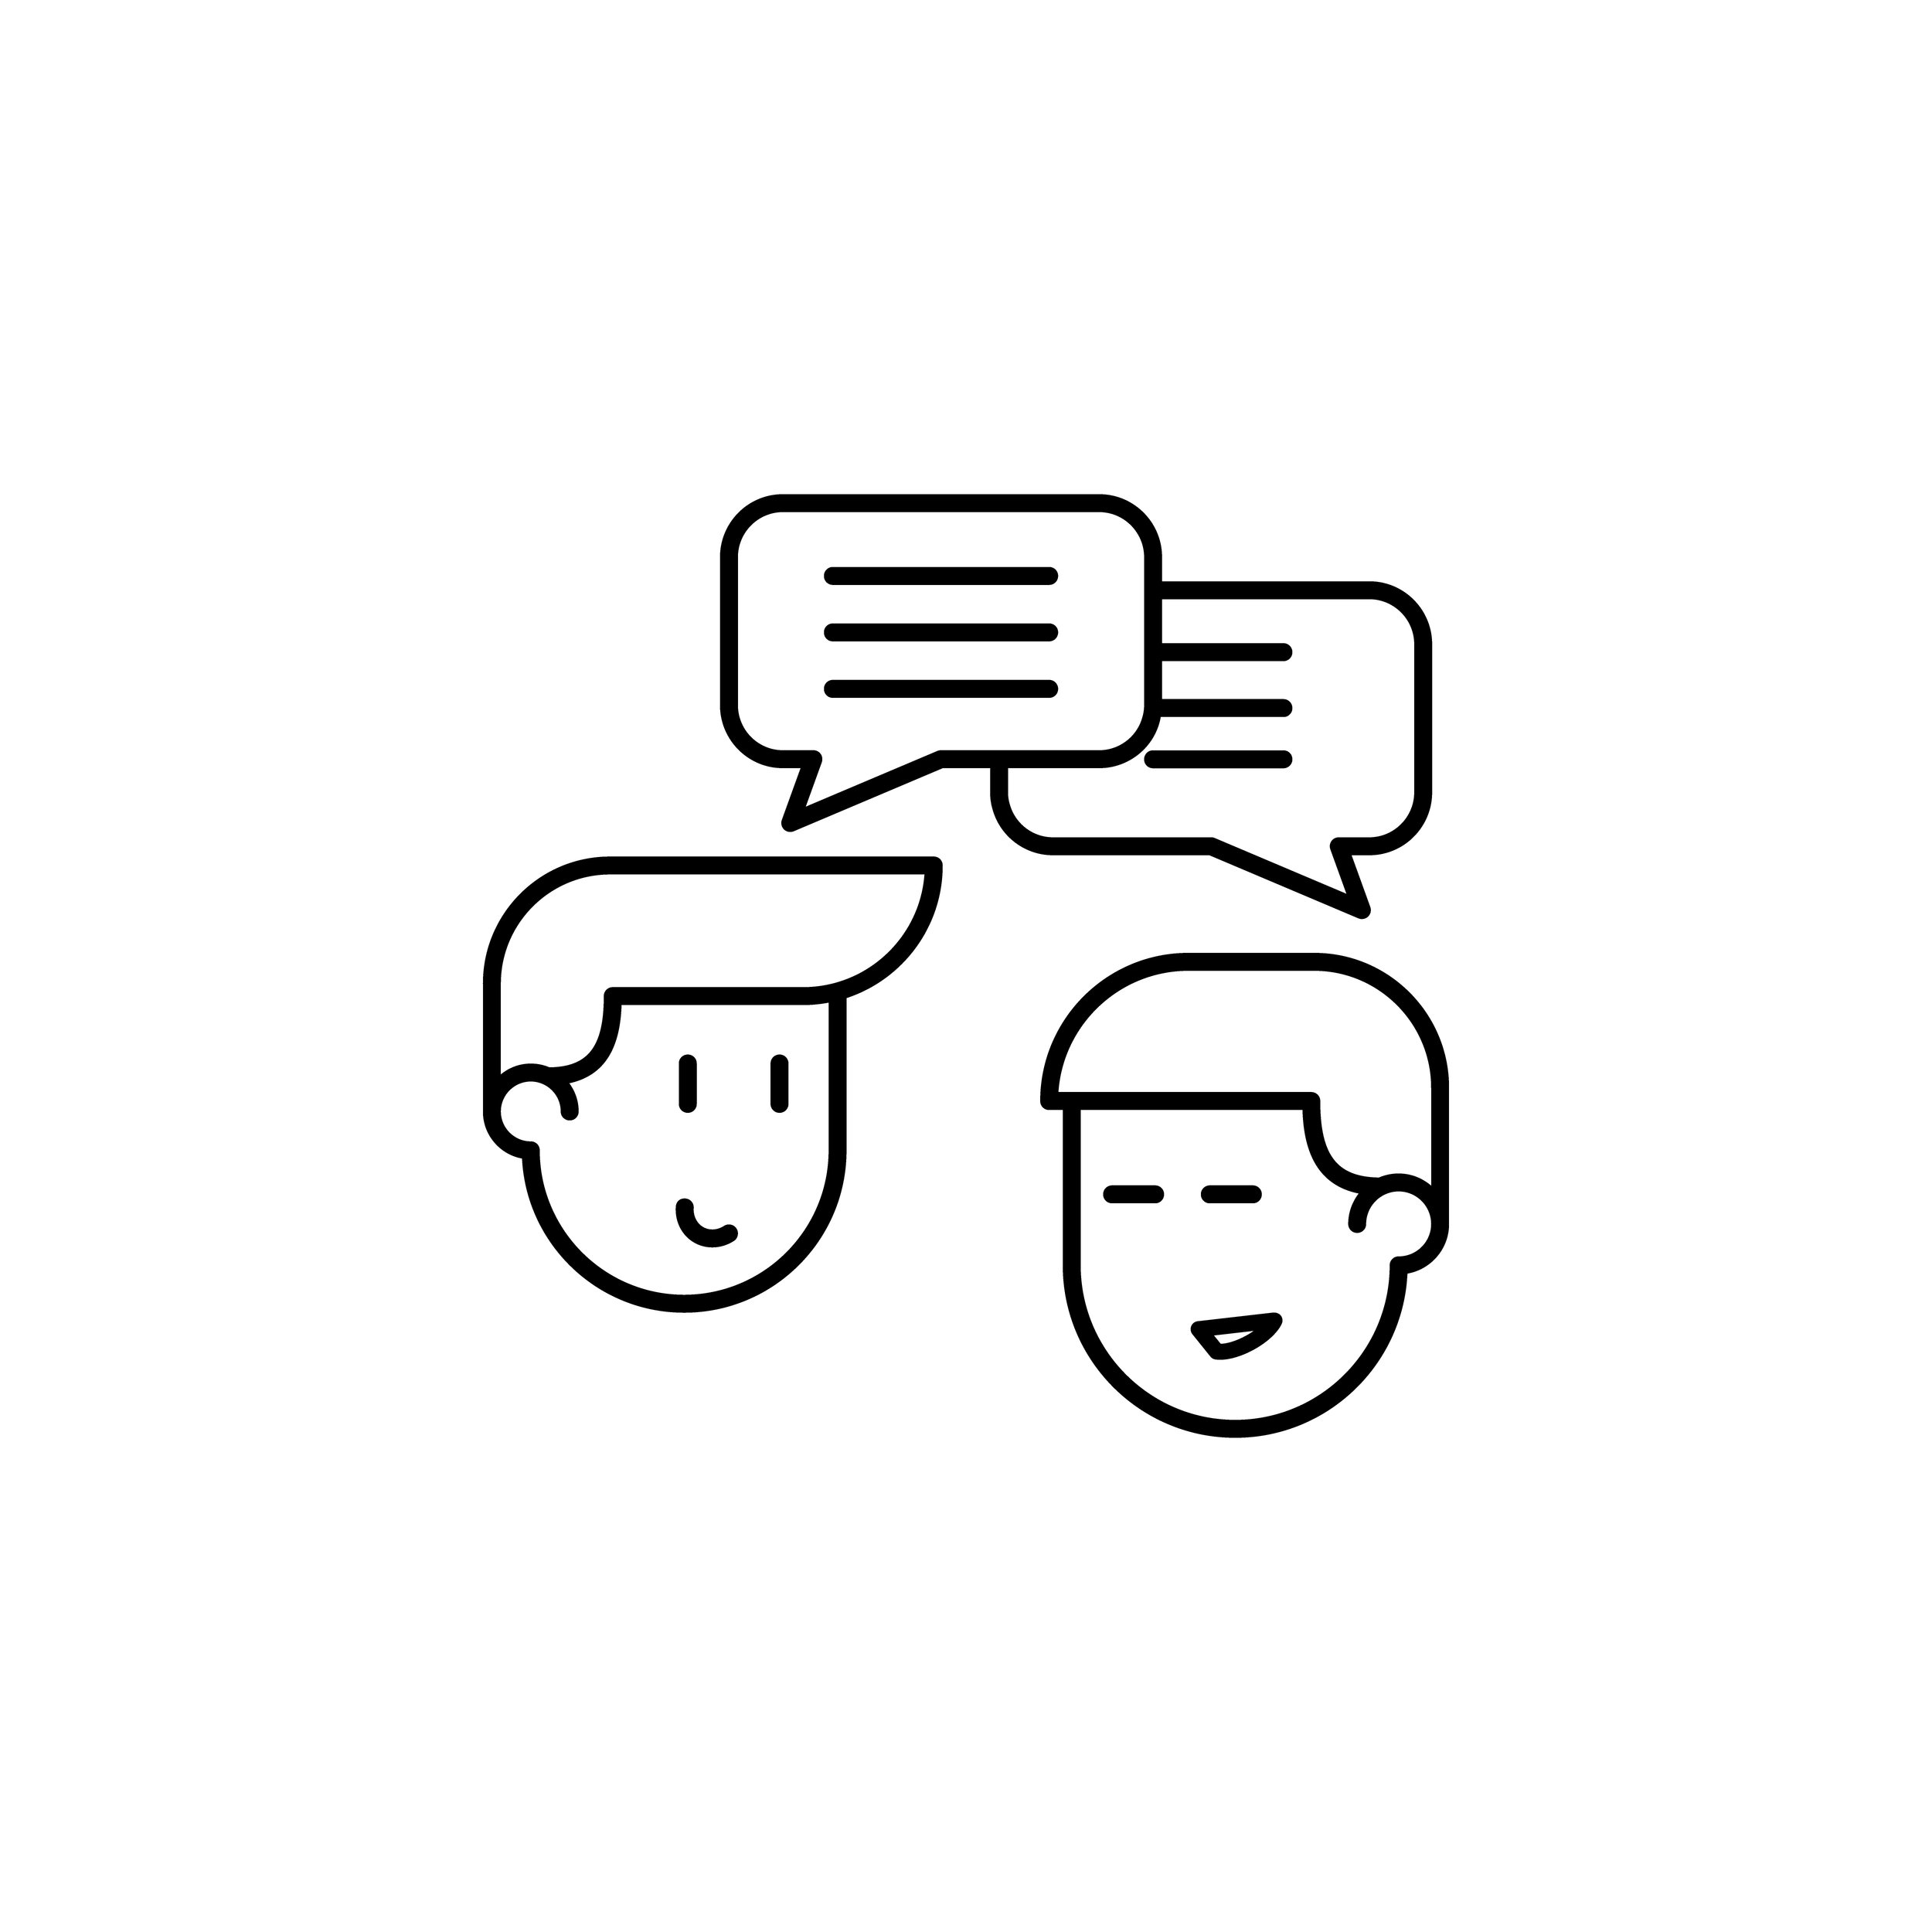 """""""Hire us"""" to get smarter in your skills and stronger in your courage.   We meet face-to-face, either in person or online.  (Otherwise called a """"consultation"""" or """"evaluation"""").  We listen to you: including the physical presentation of your speech-language communication, as well as the thoughts and feelings related to your communication.   More than just your speech, want to get to know who you are and what matters to you.    Together, we identify your goals, explore initial possibilities and begin the personal journey forward."""